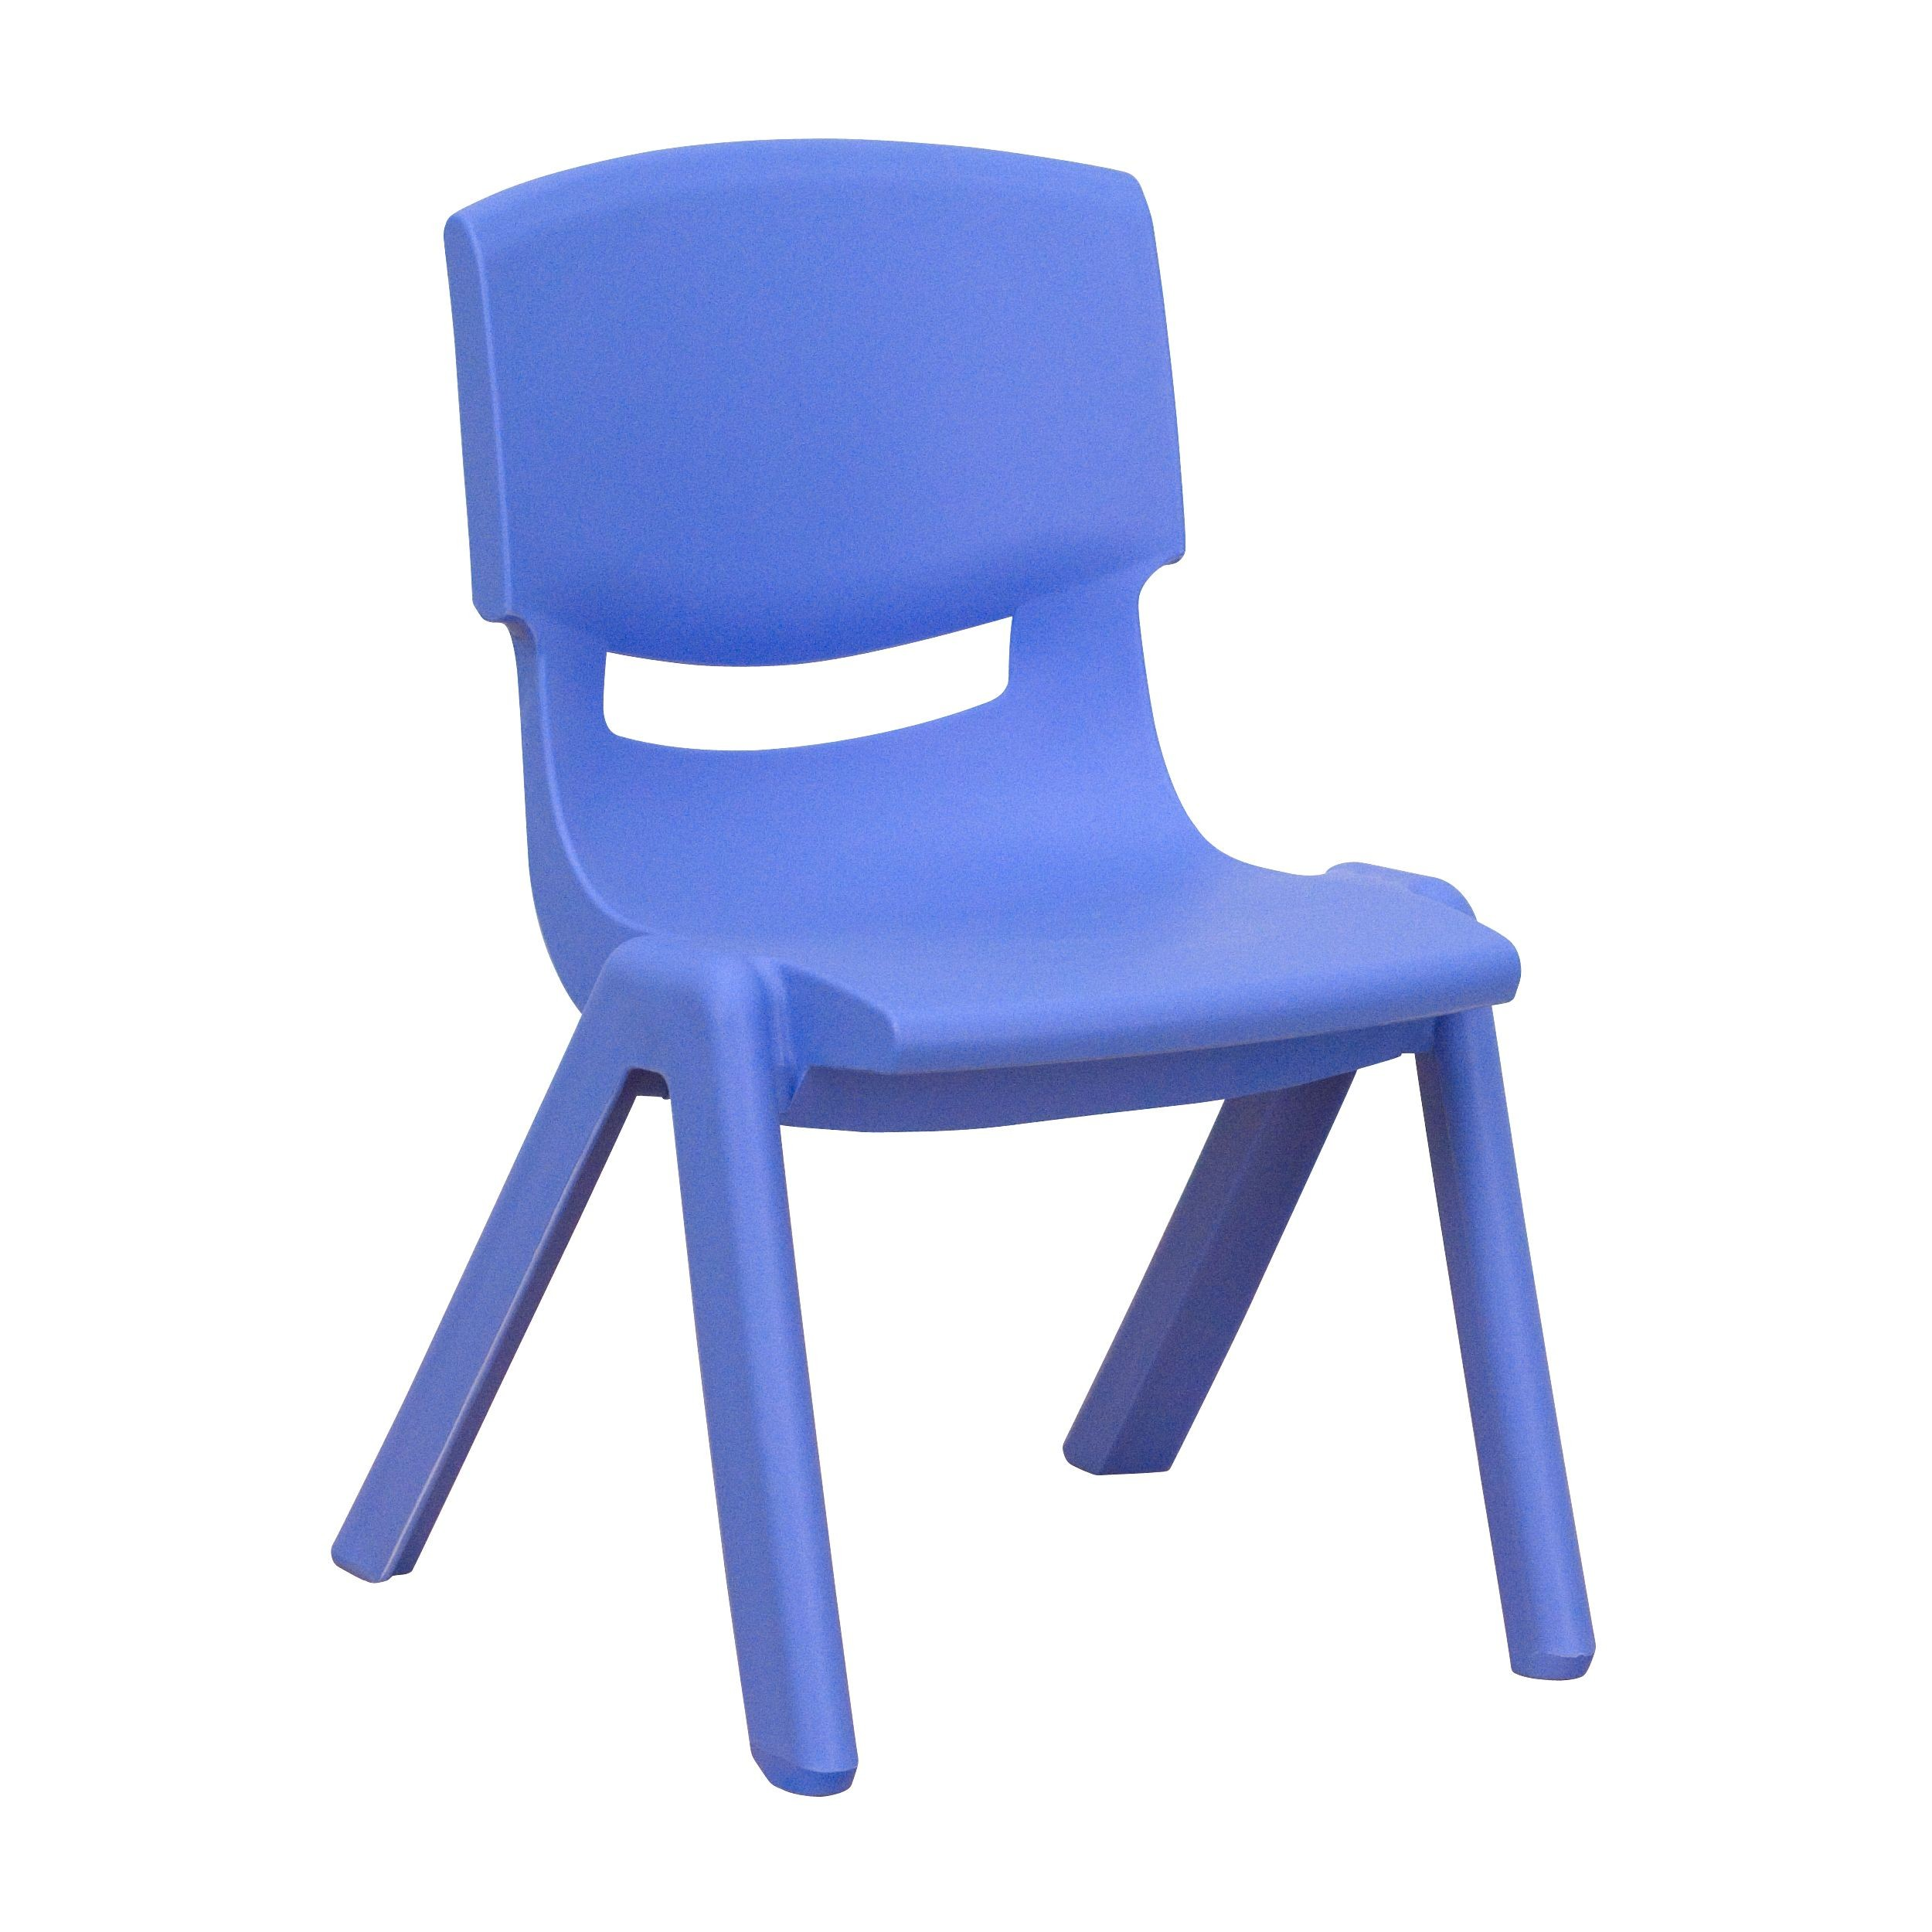 "Flash Furniture YU-YCX-003-BLUE-GG Blue Plastic Stackable School Chair with 10.5"" Seat Height"